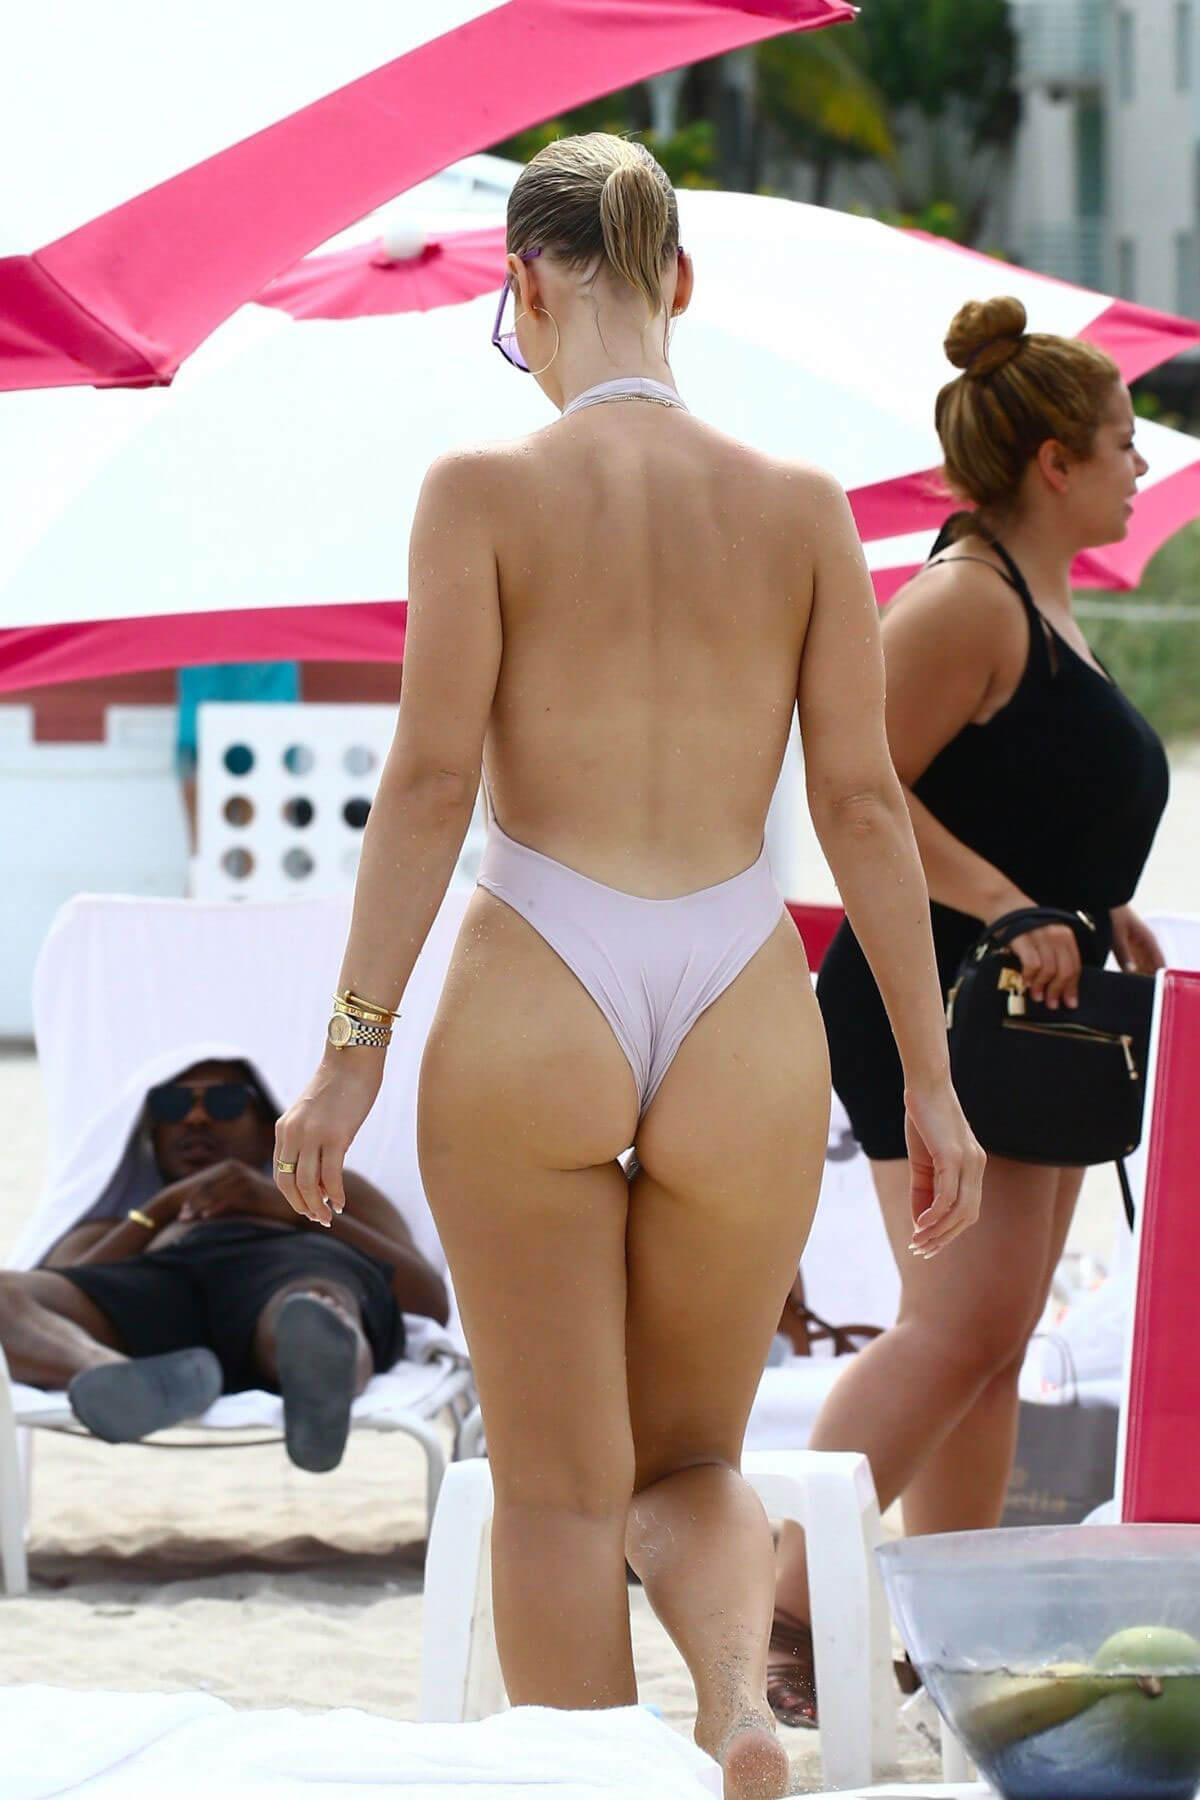 bianca elouise in swimsuit at a beach in miami photos bianca elouise swimsuit celebskart